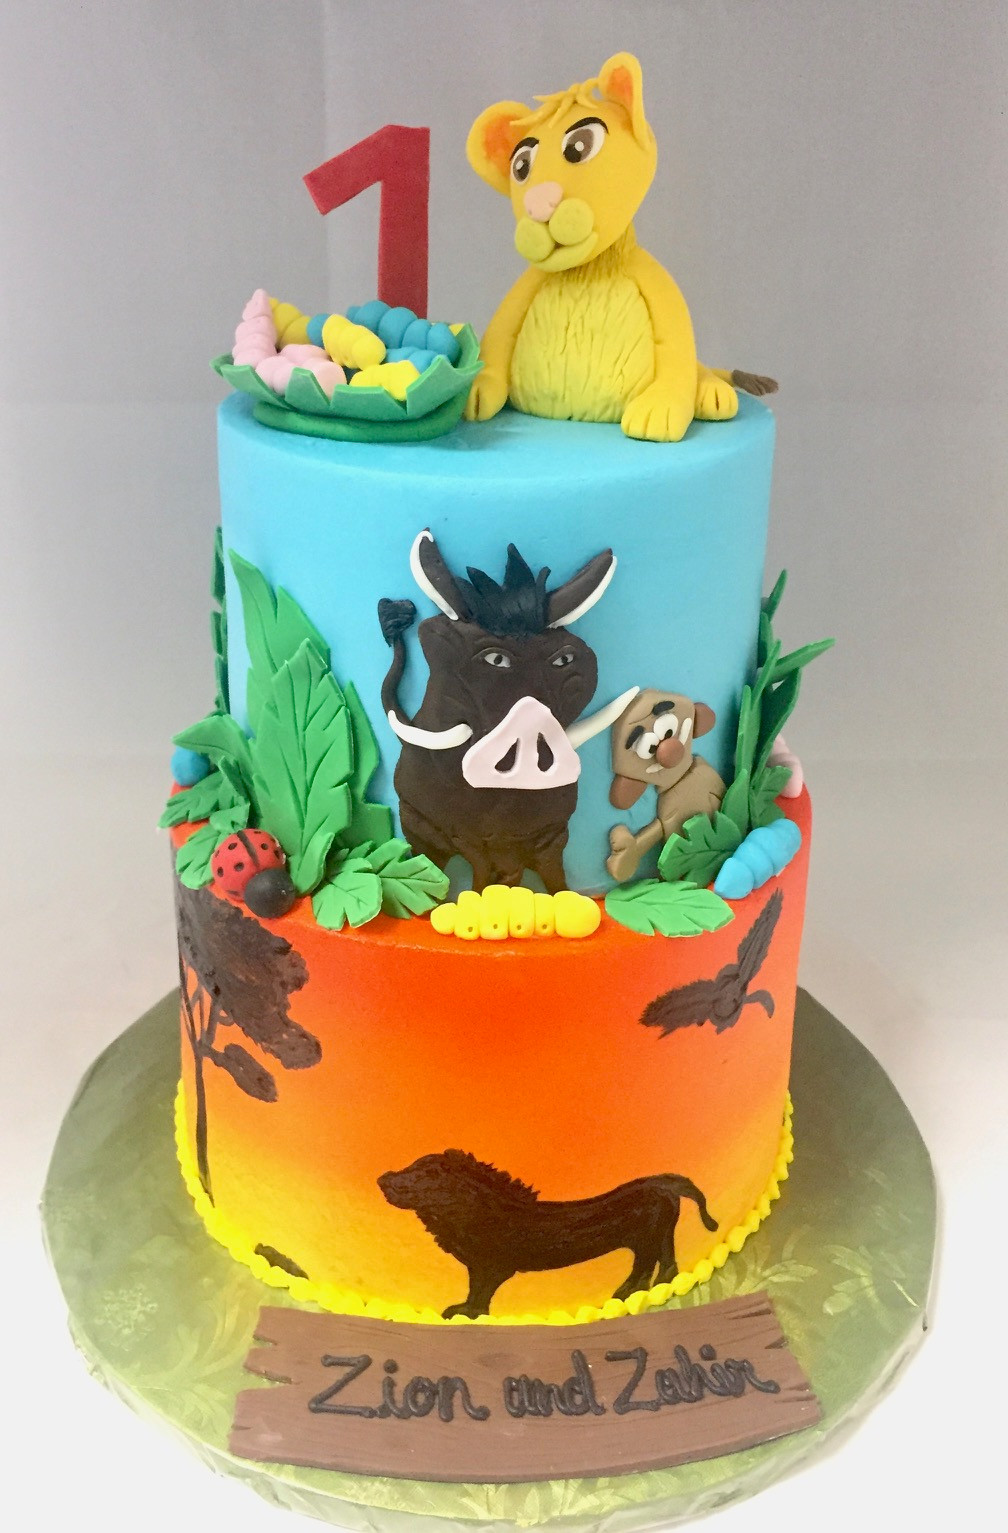 2 Tier Lion King First Birthday Cake BC,125